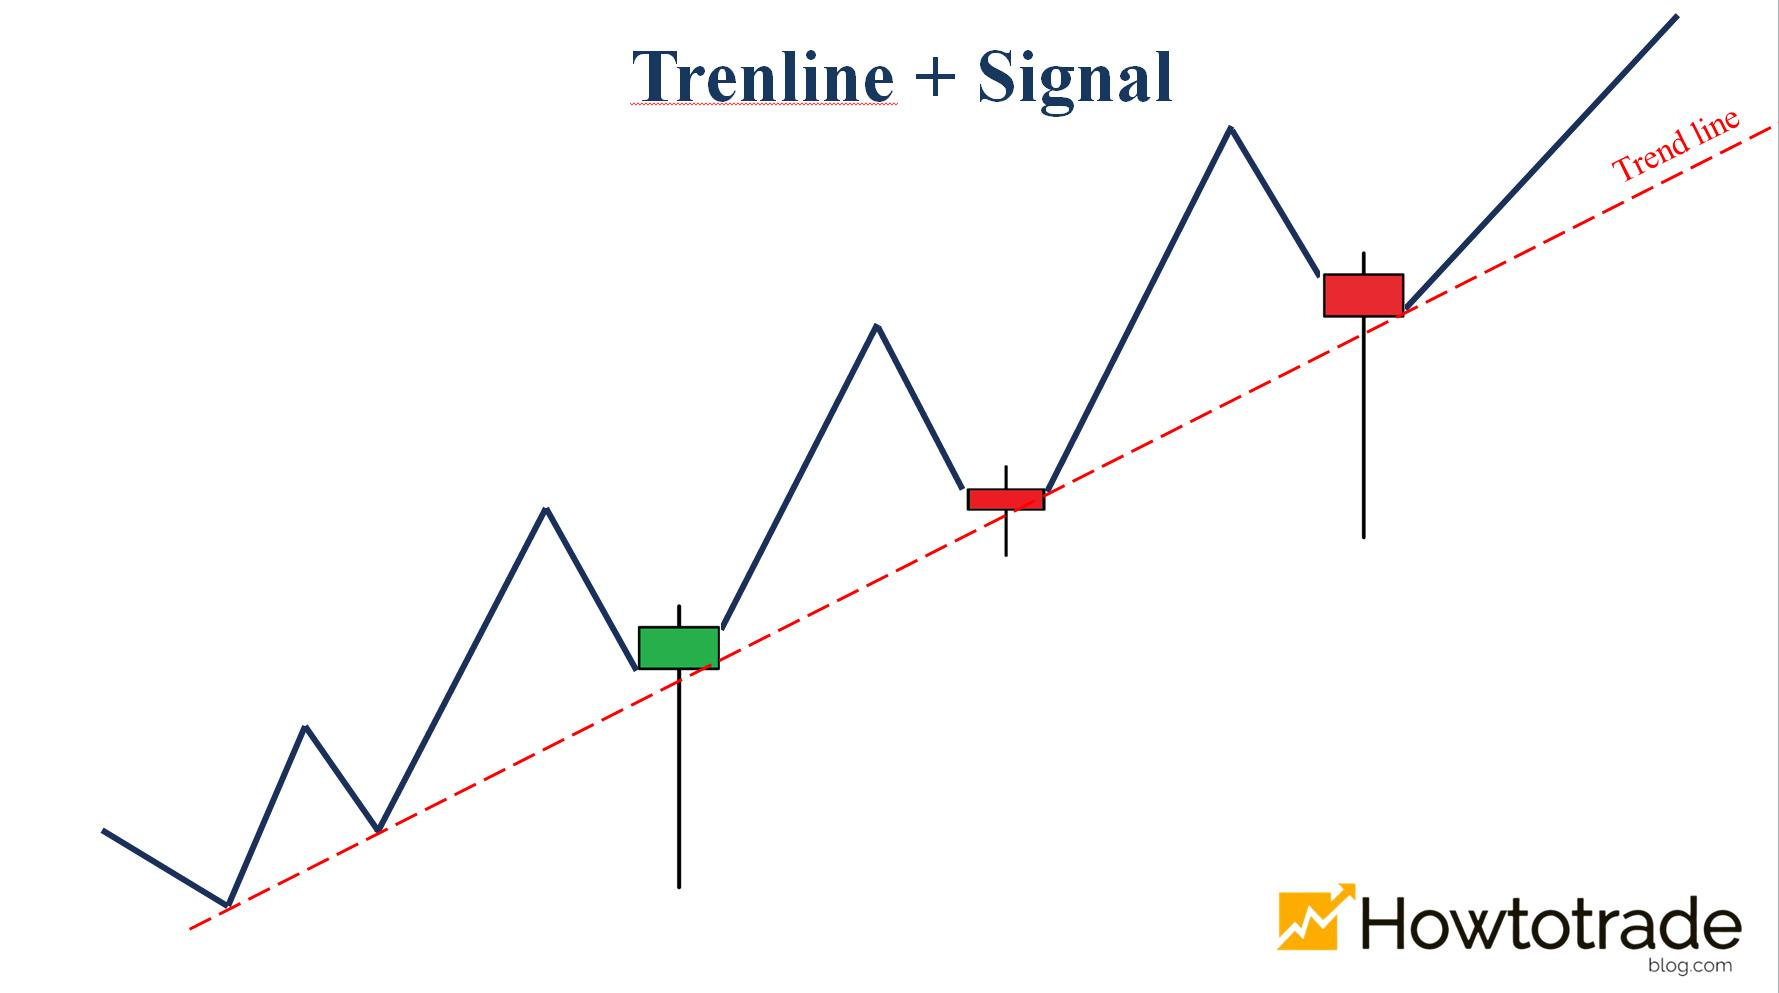 Trendline combined with Doji or Bullish Pin Bar candlestick